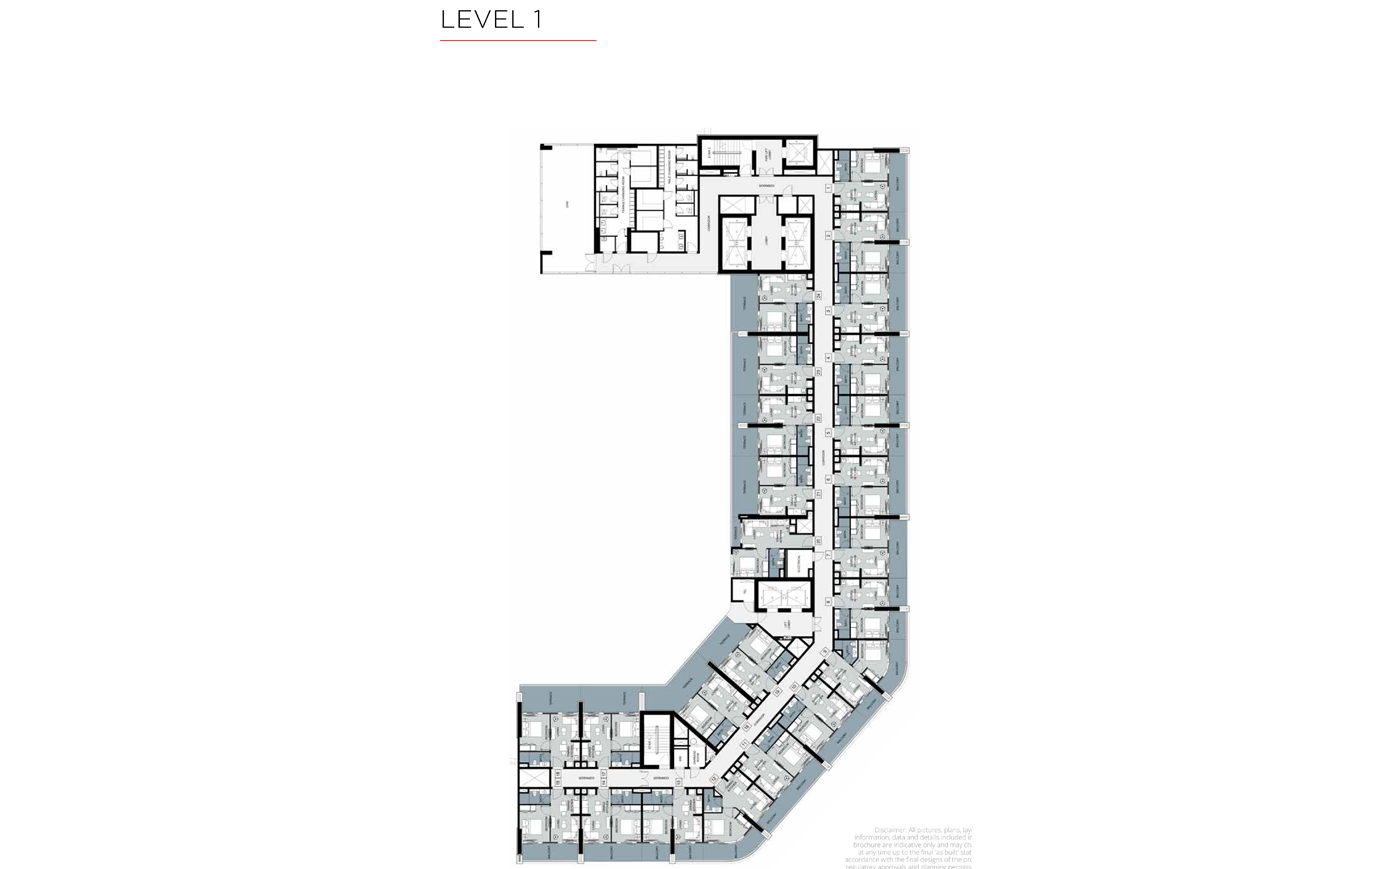 Typical Floor, Level 1